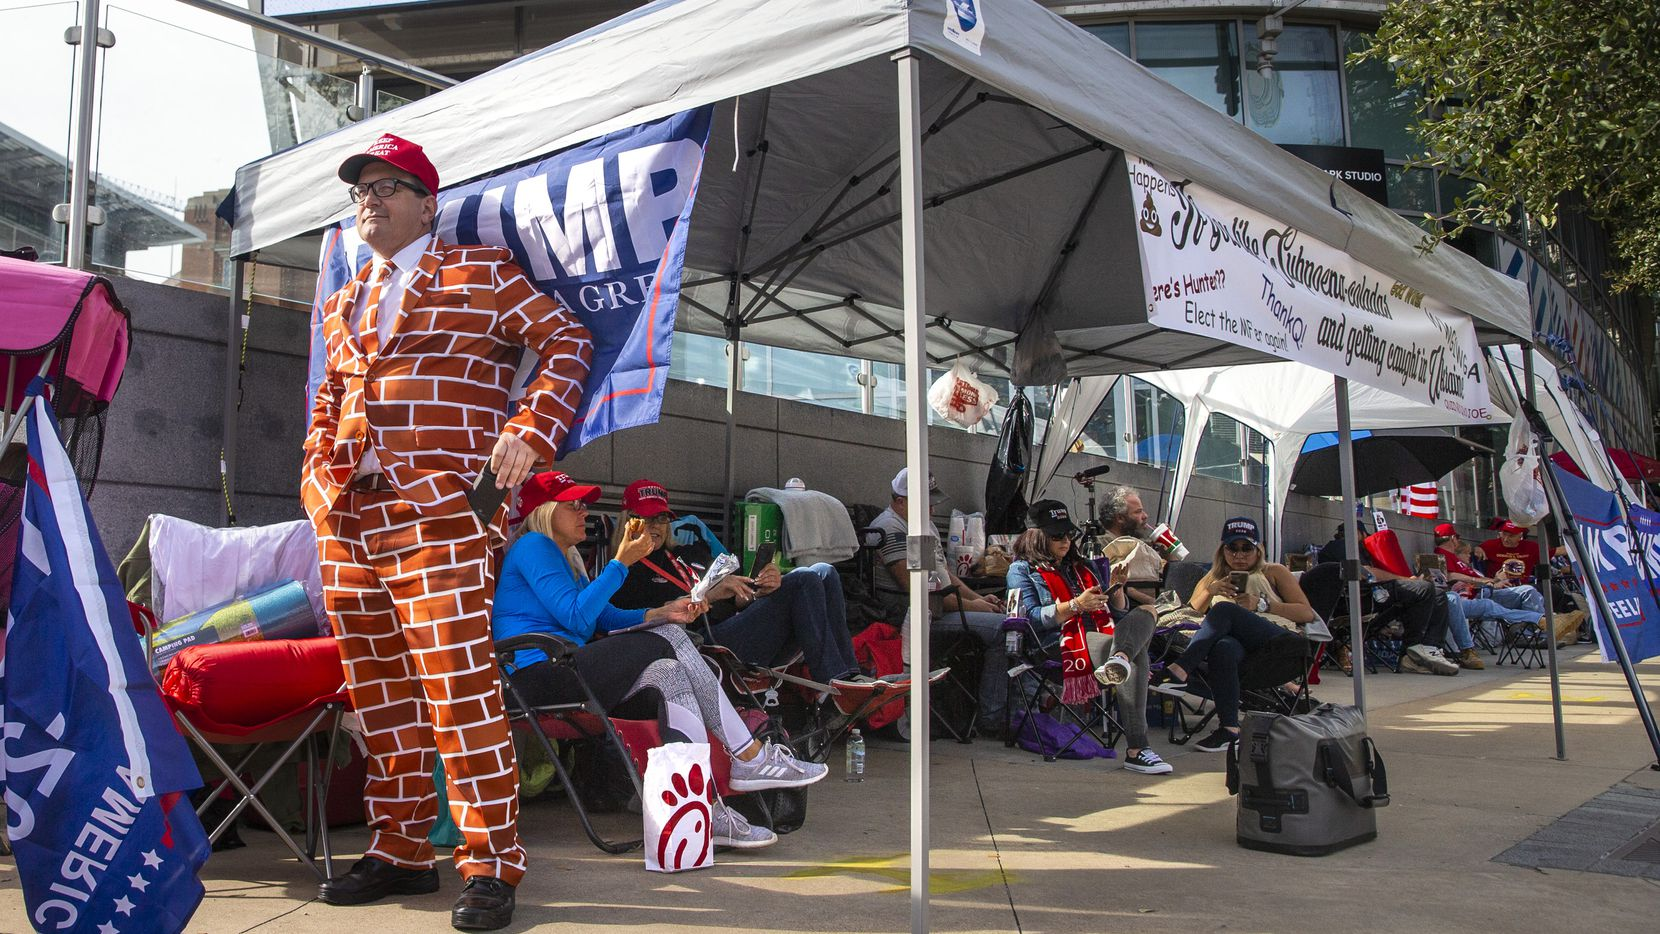 Blake Marnell wears a brick suit while camping out in line in front of American Airlines Center in Dallas on Wednesday, Oct. 16, 2019. President Donald Trump will host a rally at the center on Thursday evening.